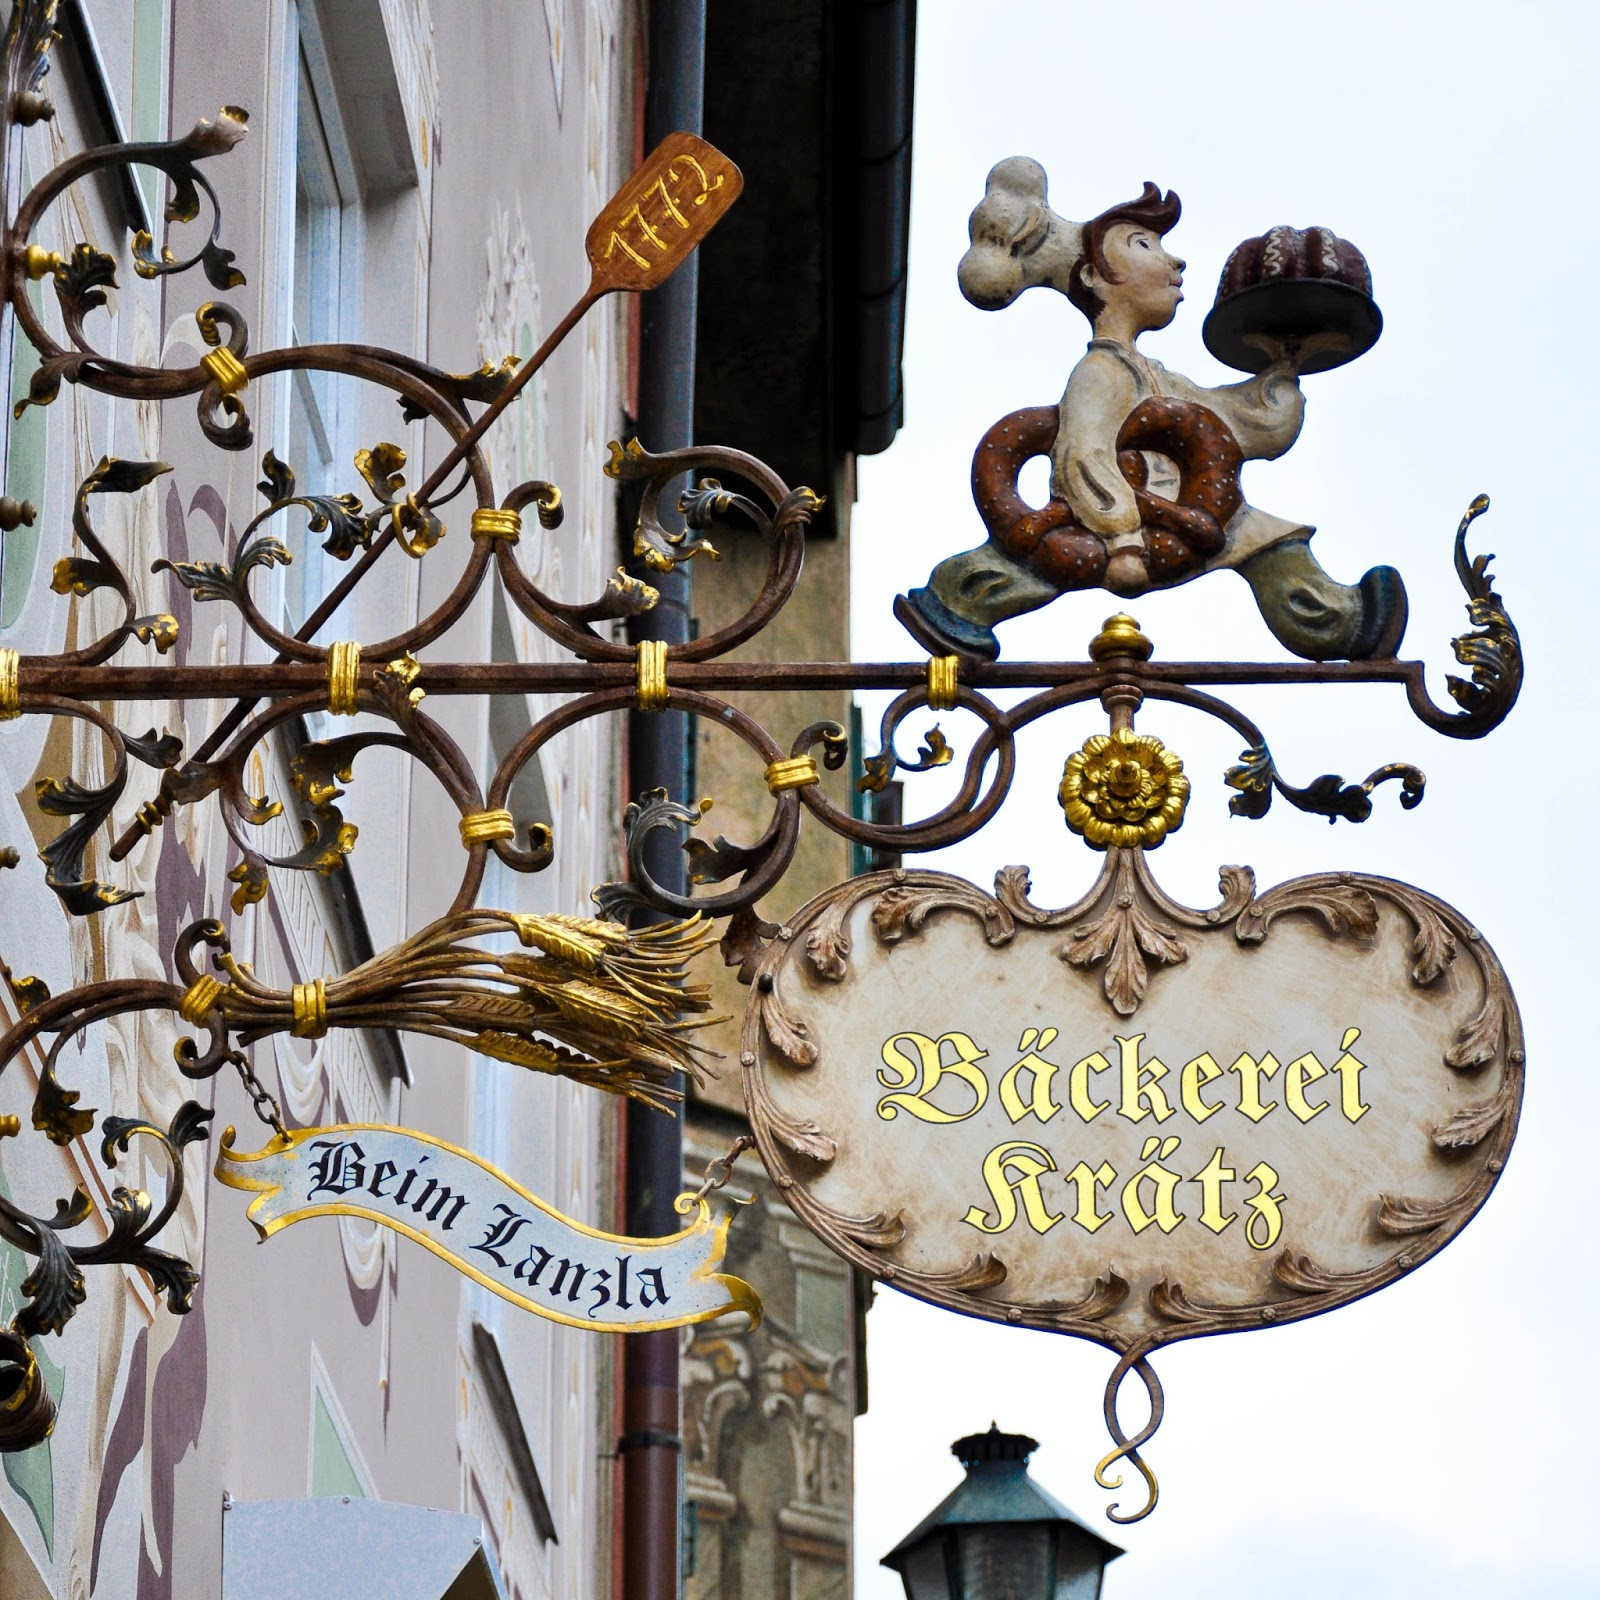 Bakery Shop Sign, Garmisch-Parternkirchen, Bavaria, Germany